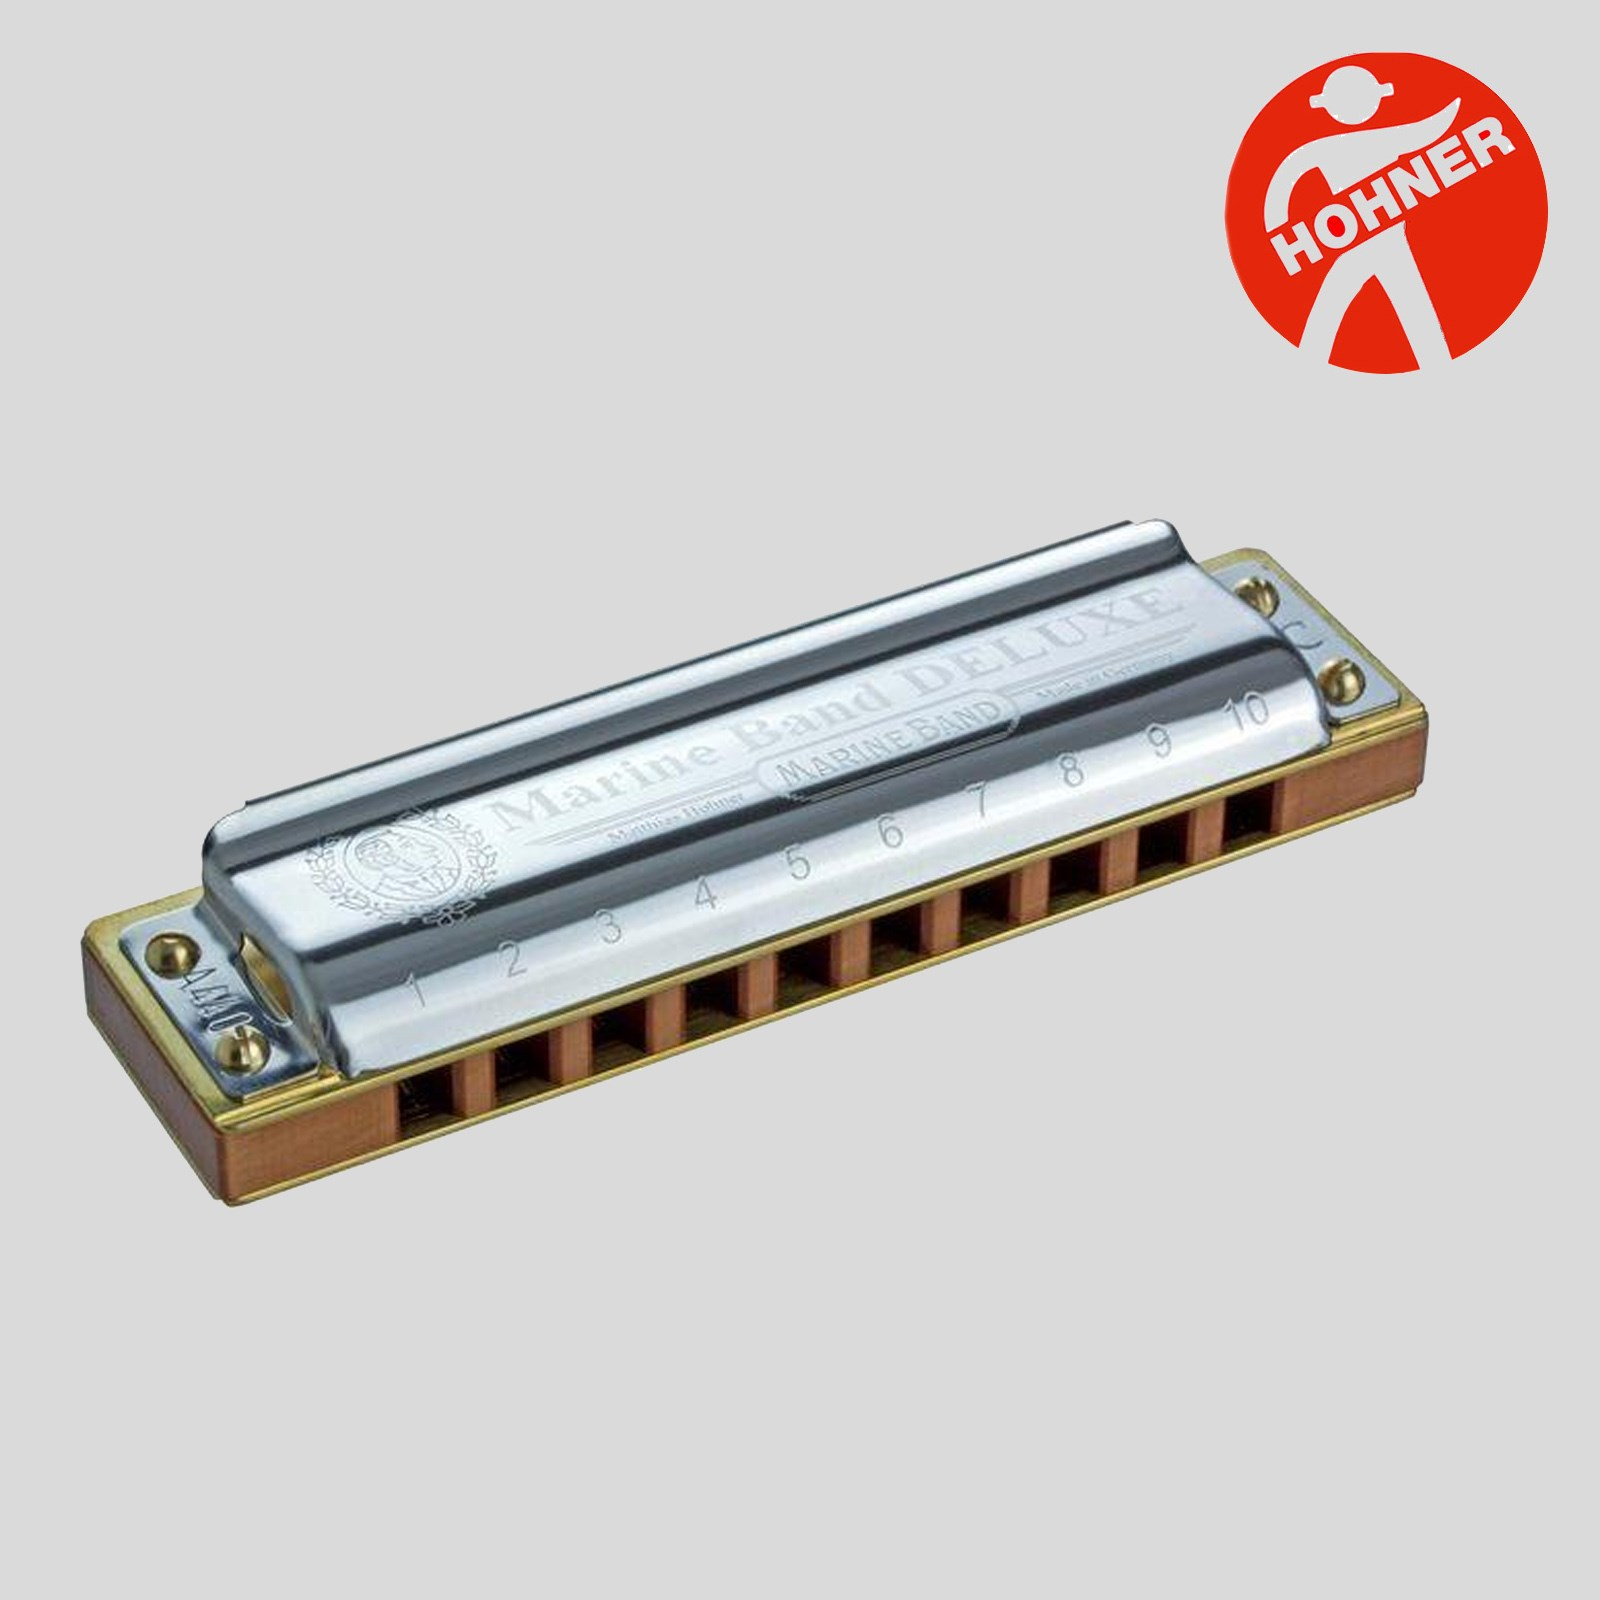 hohner marine band deluxe key of D